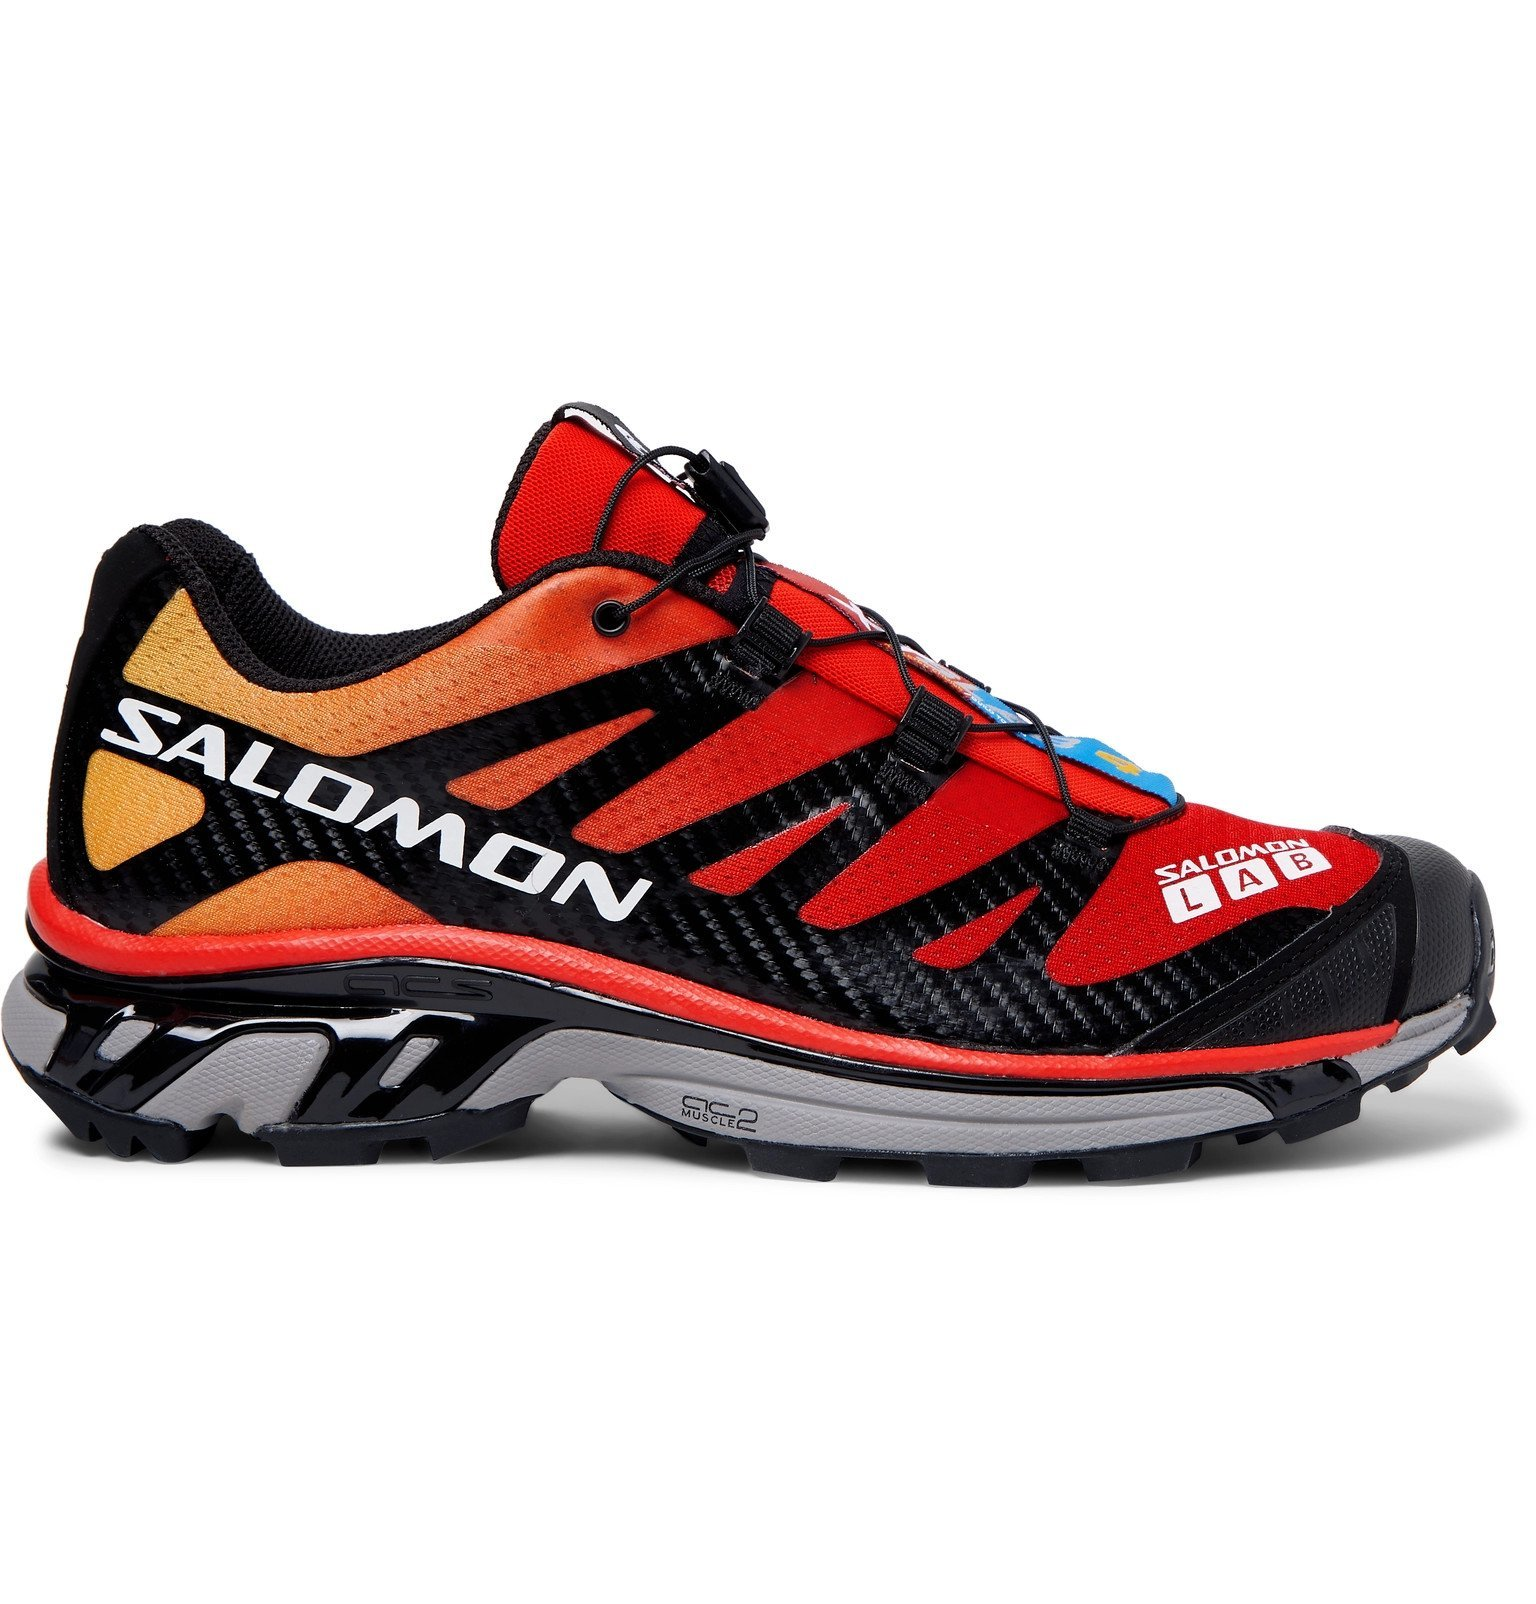 Photo: Salomon - S/LAB XT-4 ADV Mesh and Rubber Running Sneakers - Red